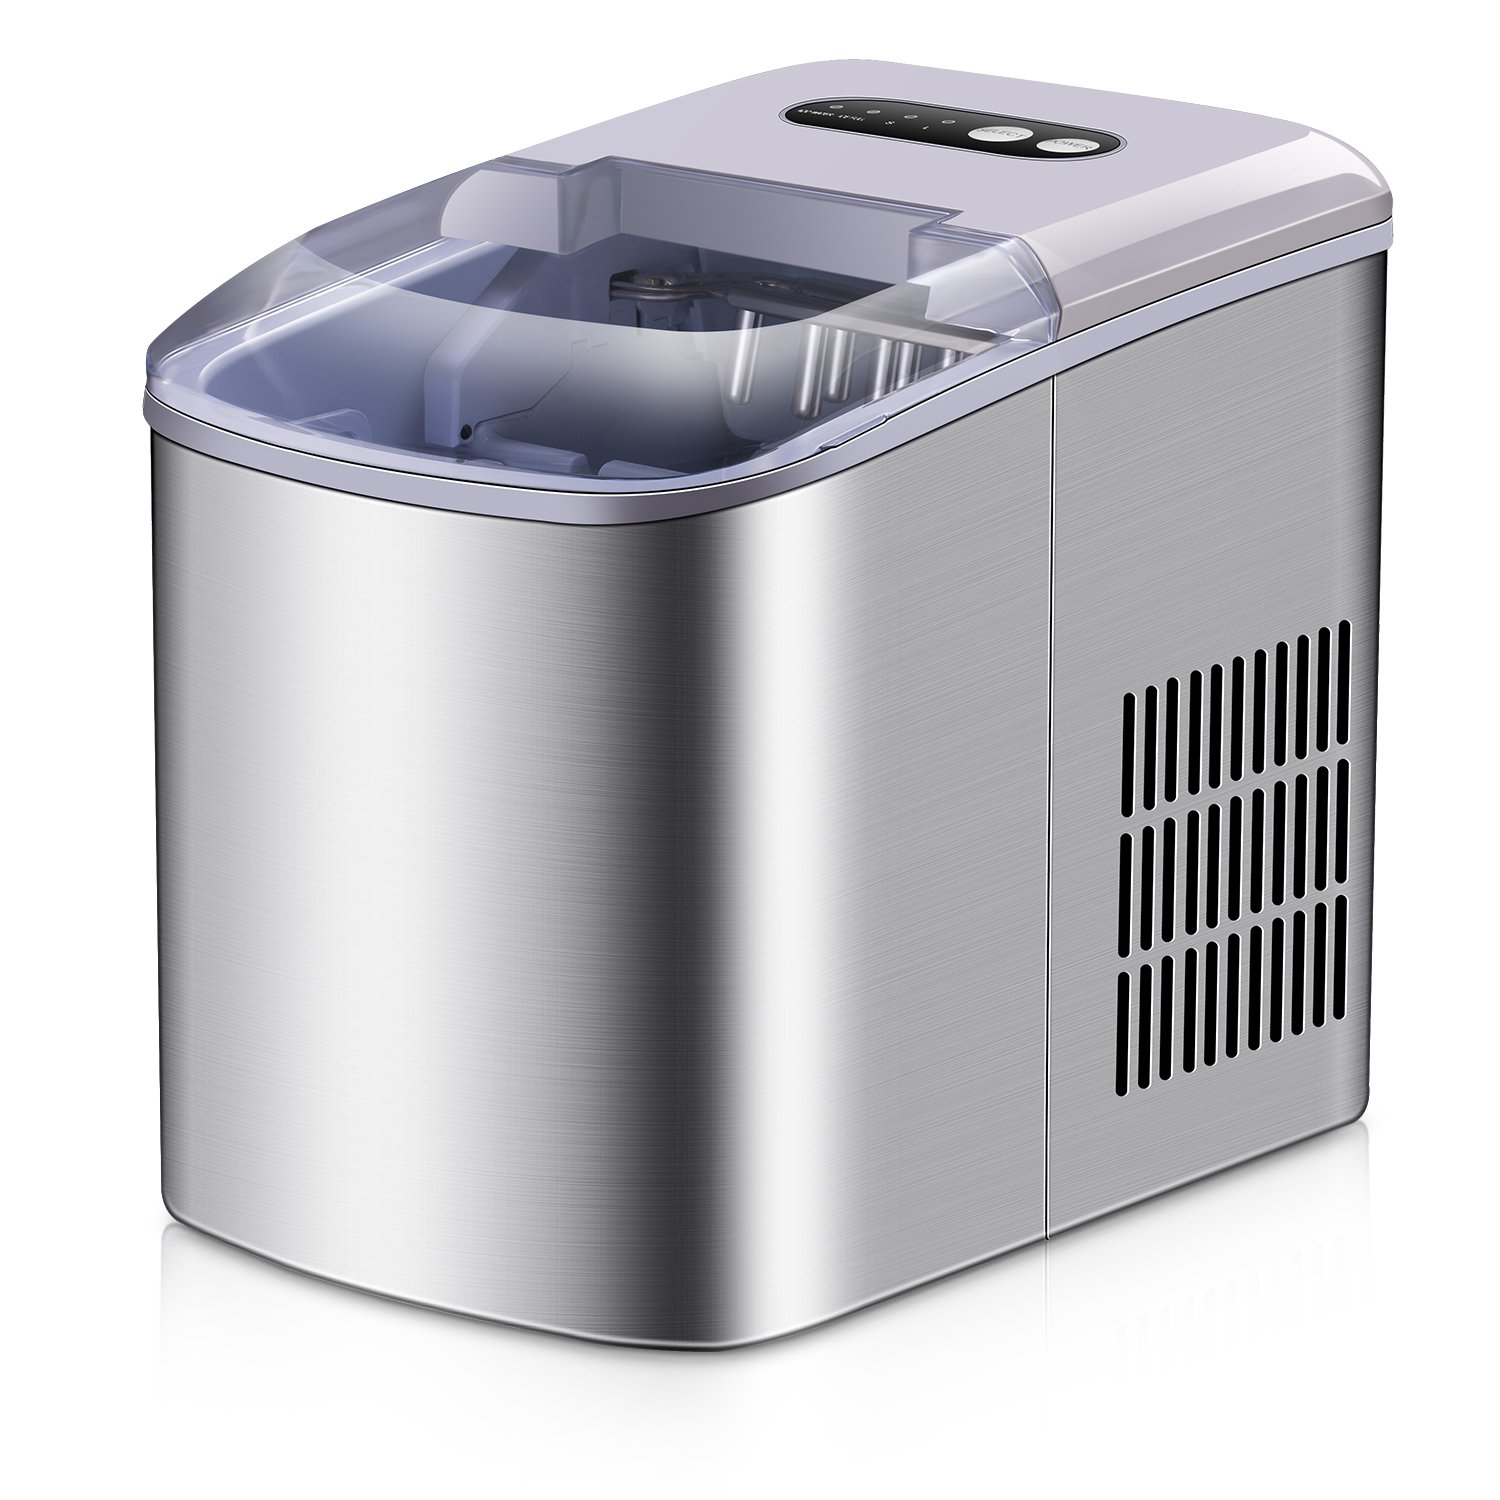 Portable Ice Maker - 2018 New Style Stainless Steel Countertop Ice Maker Machine, Get 9 Ice Cubes in as quick as 6 Minutes,Makes Over 26 lbs of Ice per Day Allsees A-03